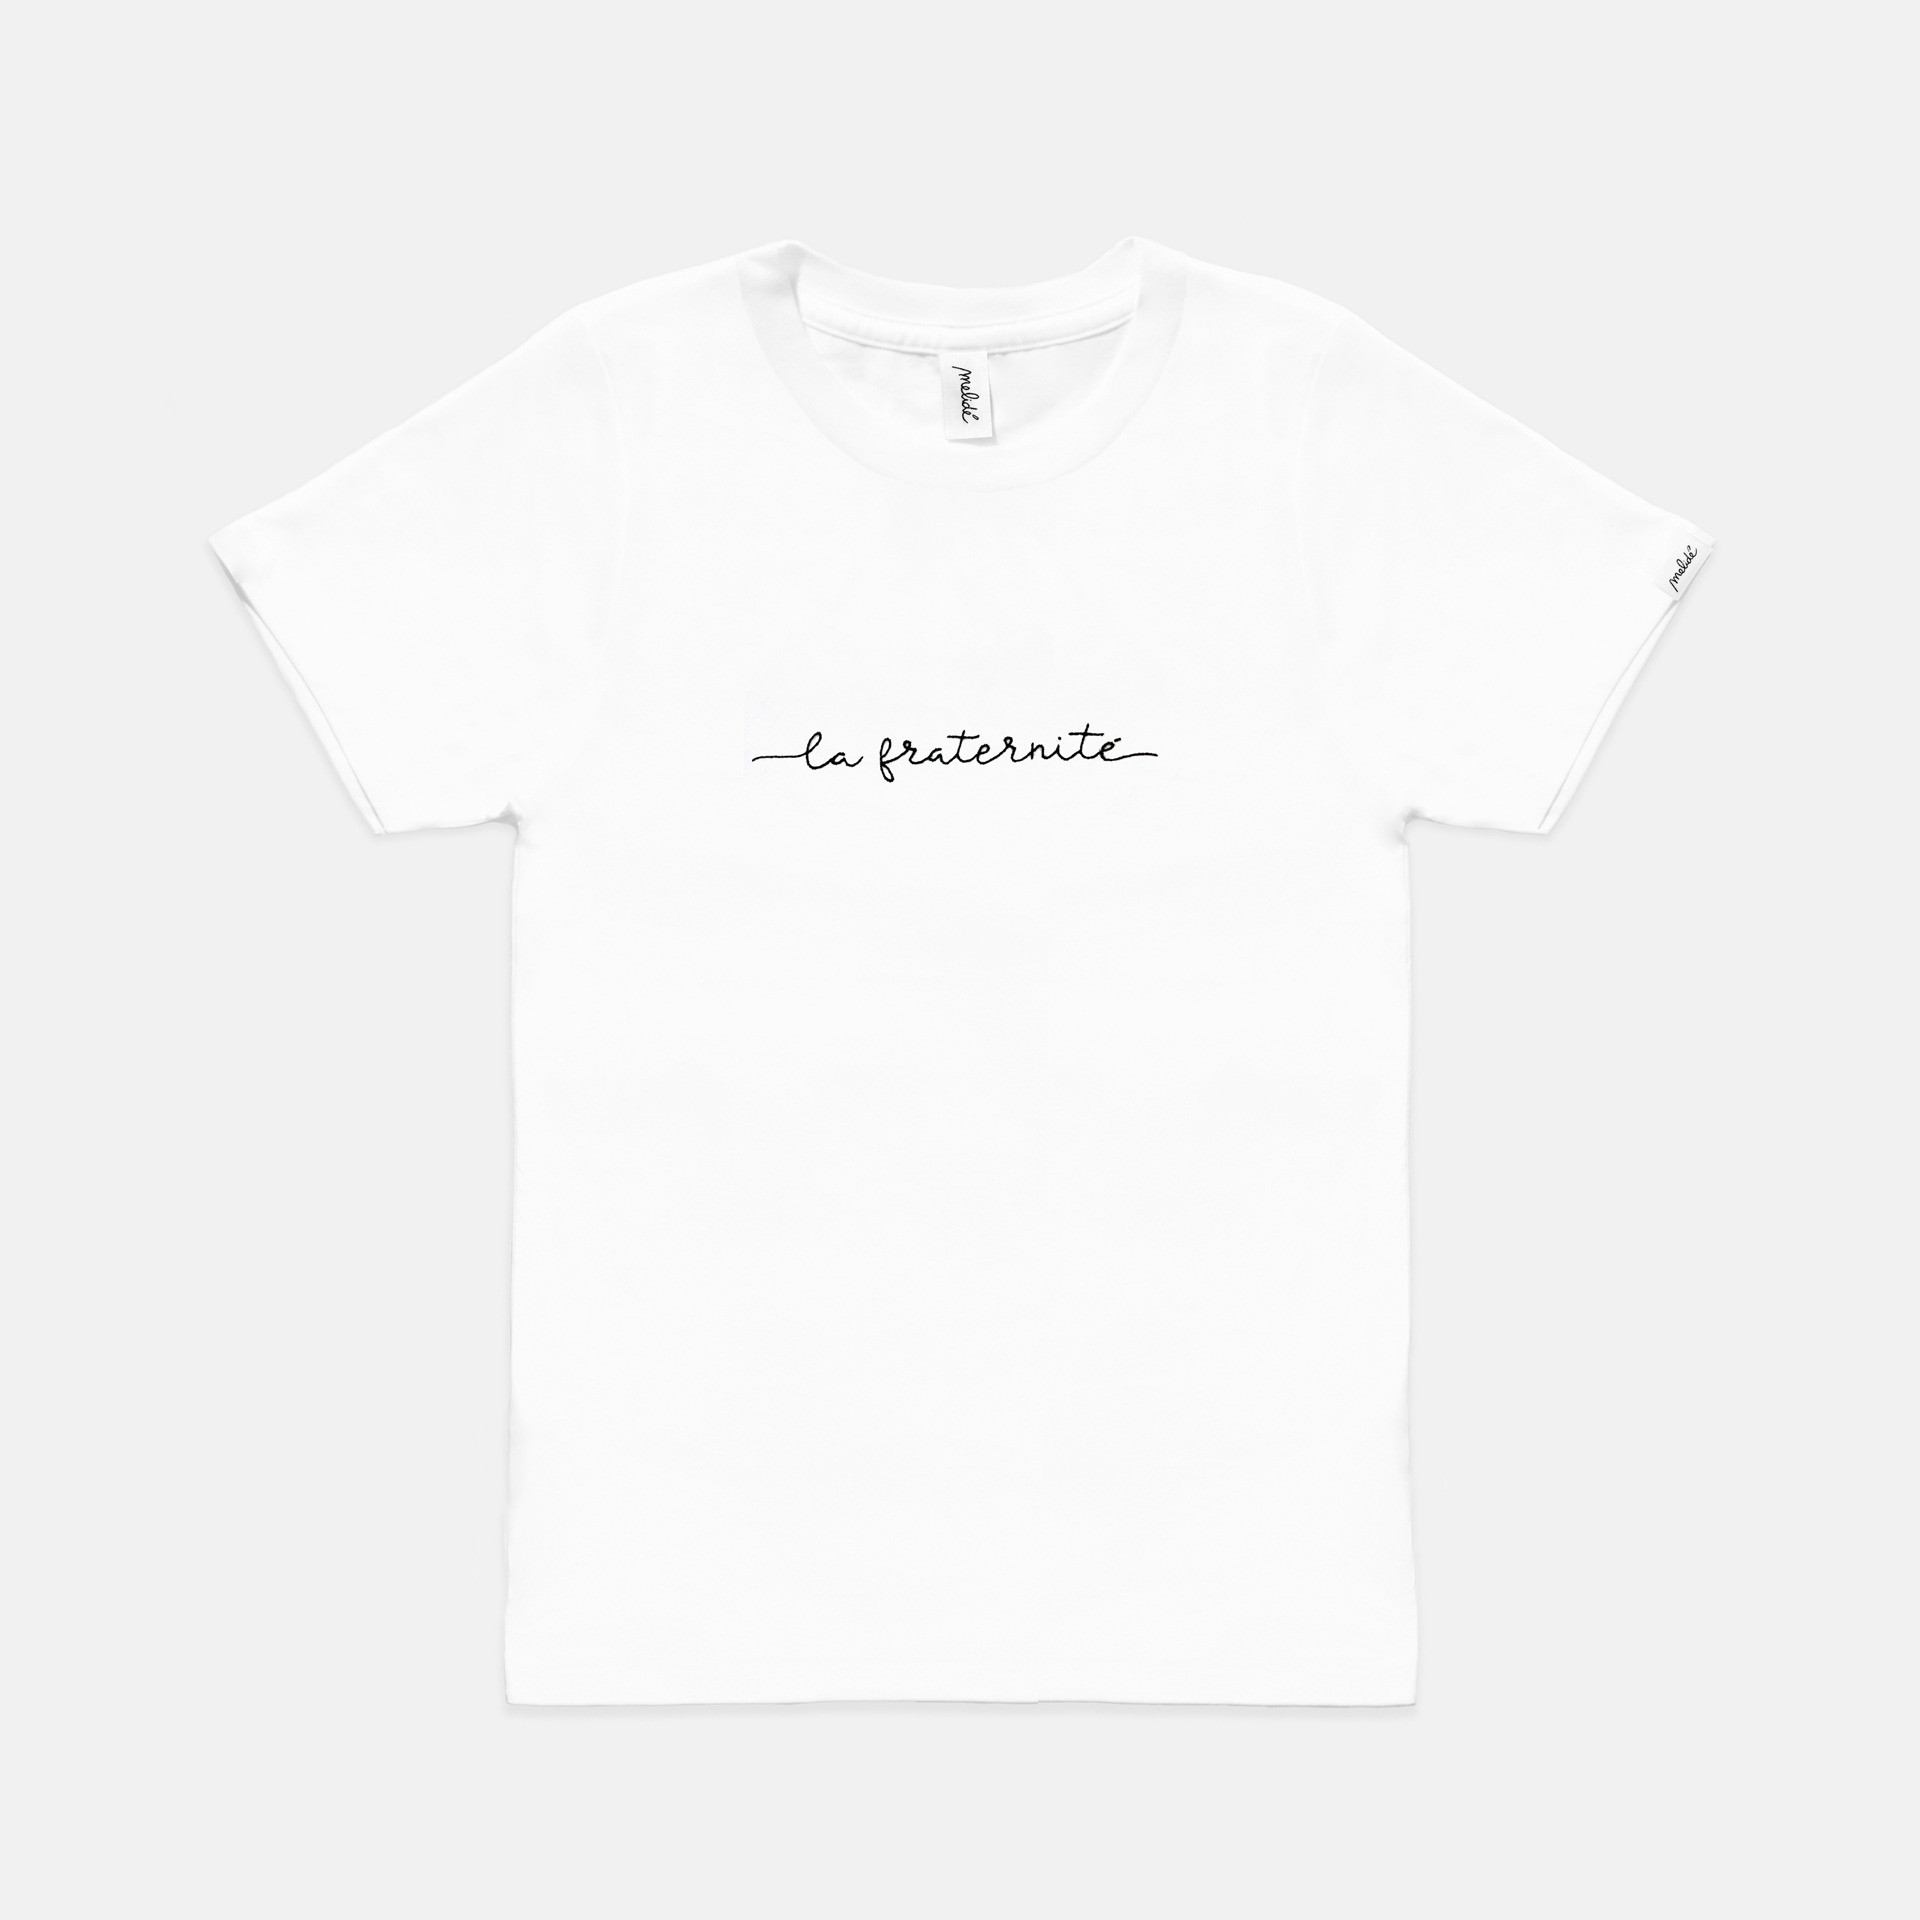 The FRATERNITé tee